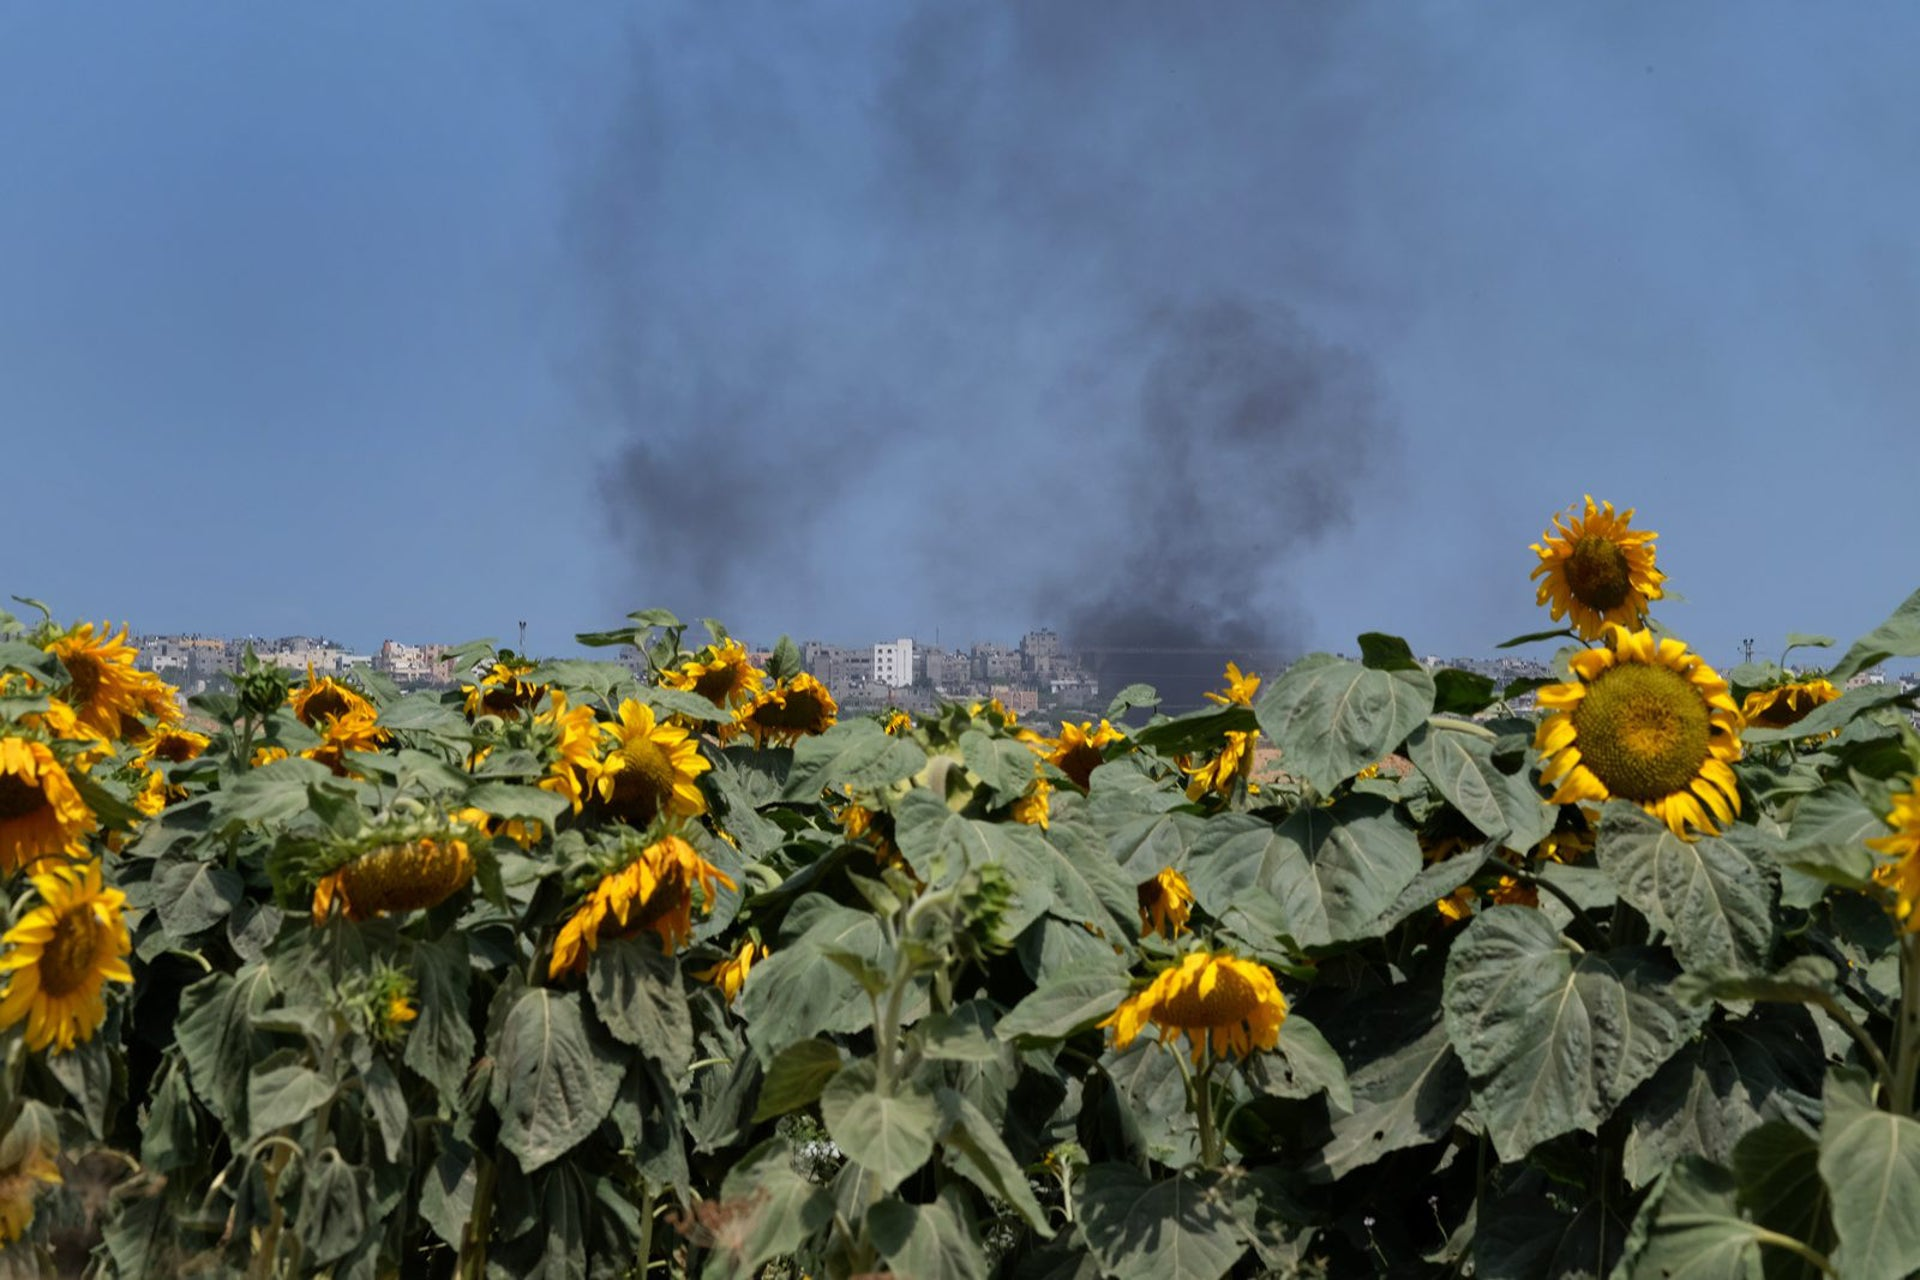 Smoke rises behind a sunflower field on the Gaza border